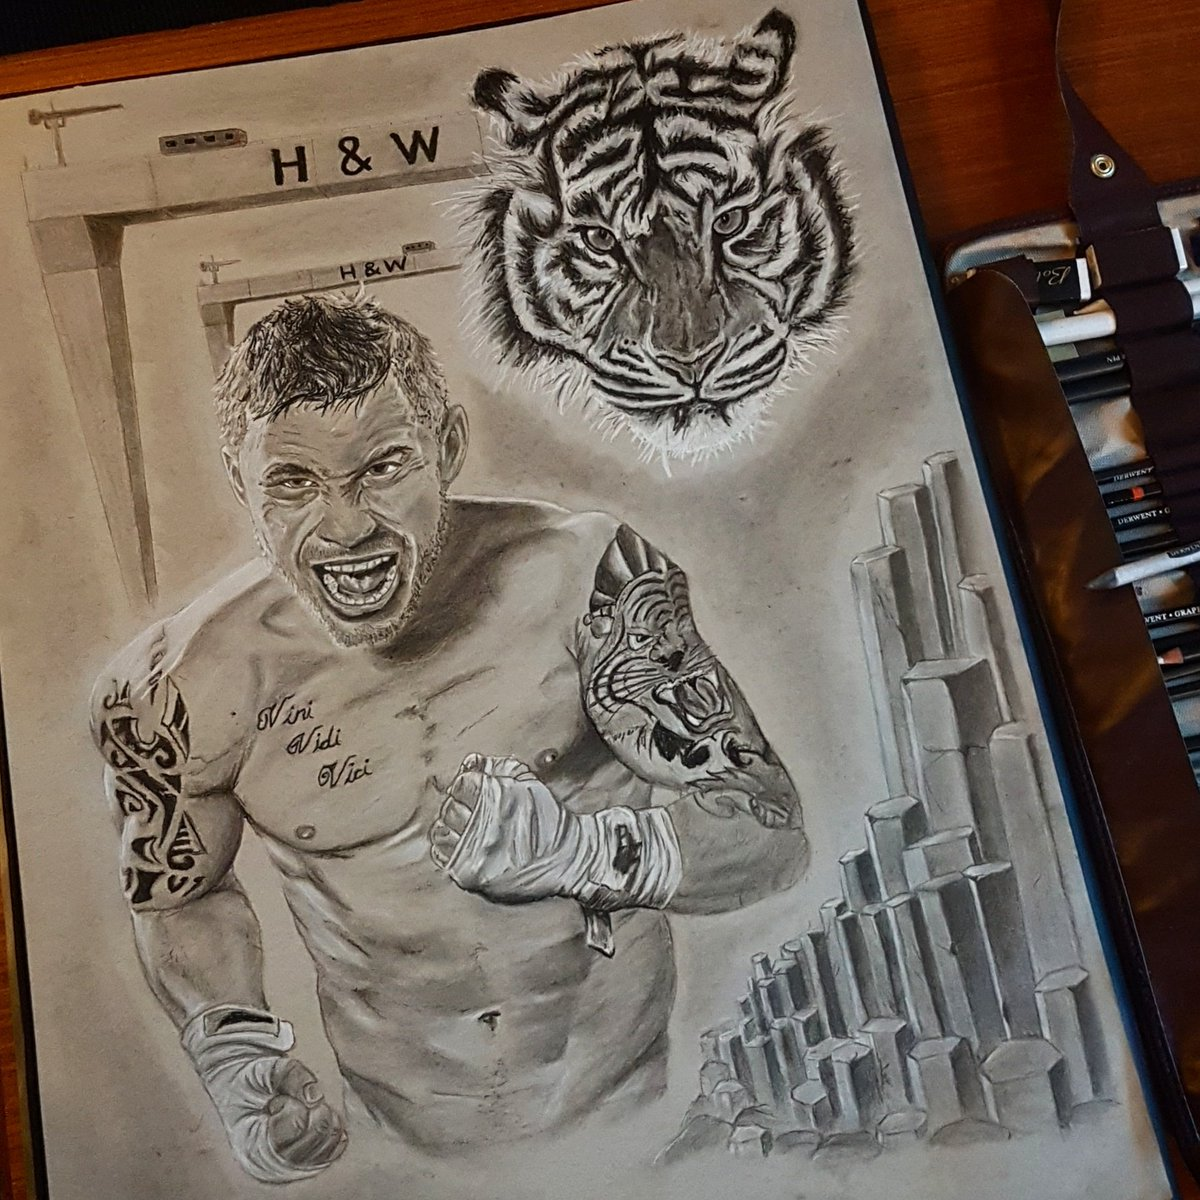 Add 2 to the record, 2 of my pencils got KOed from this, team jackal #RetweeetPlease #getthissigned  @RealCFrampton<br>http://pic.twitter.com/Cwa7TiXkeQ